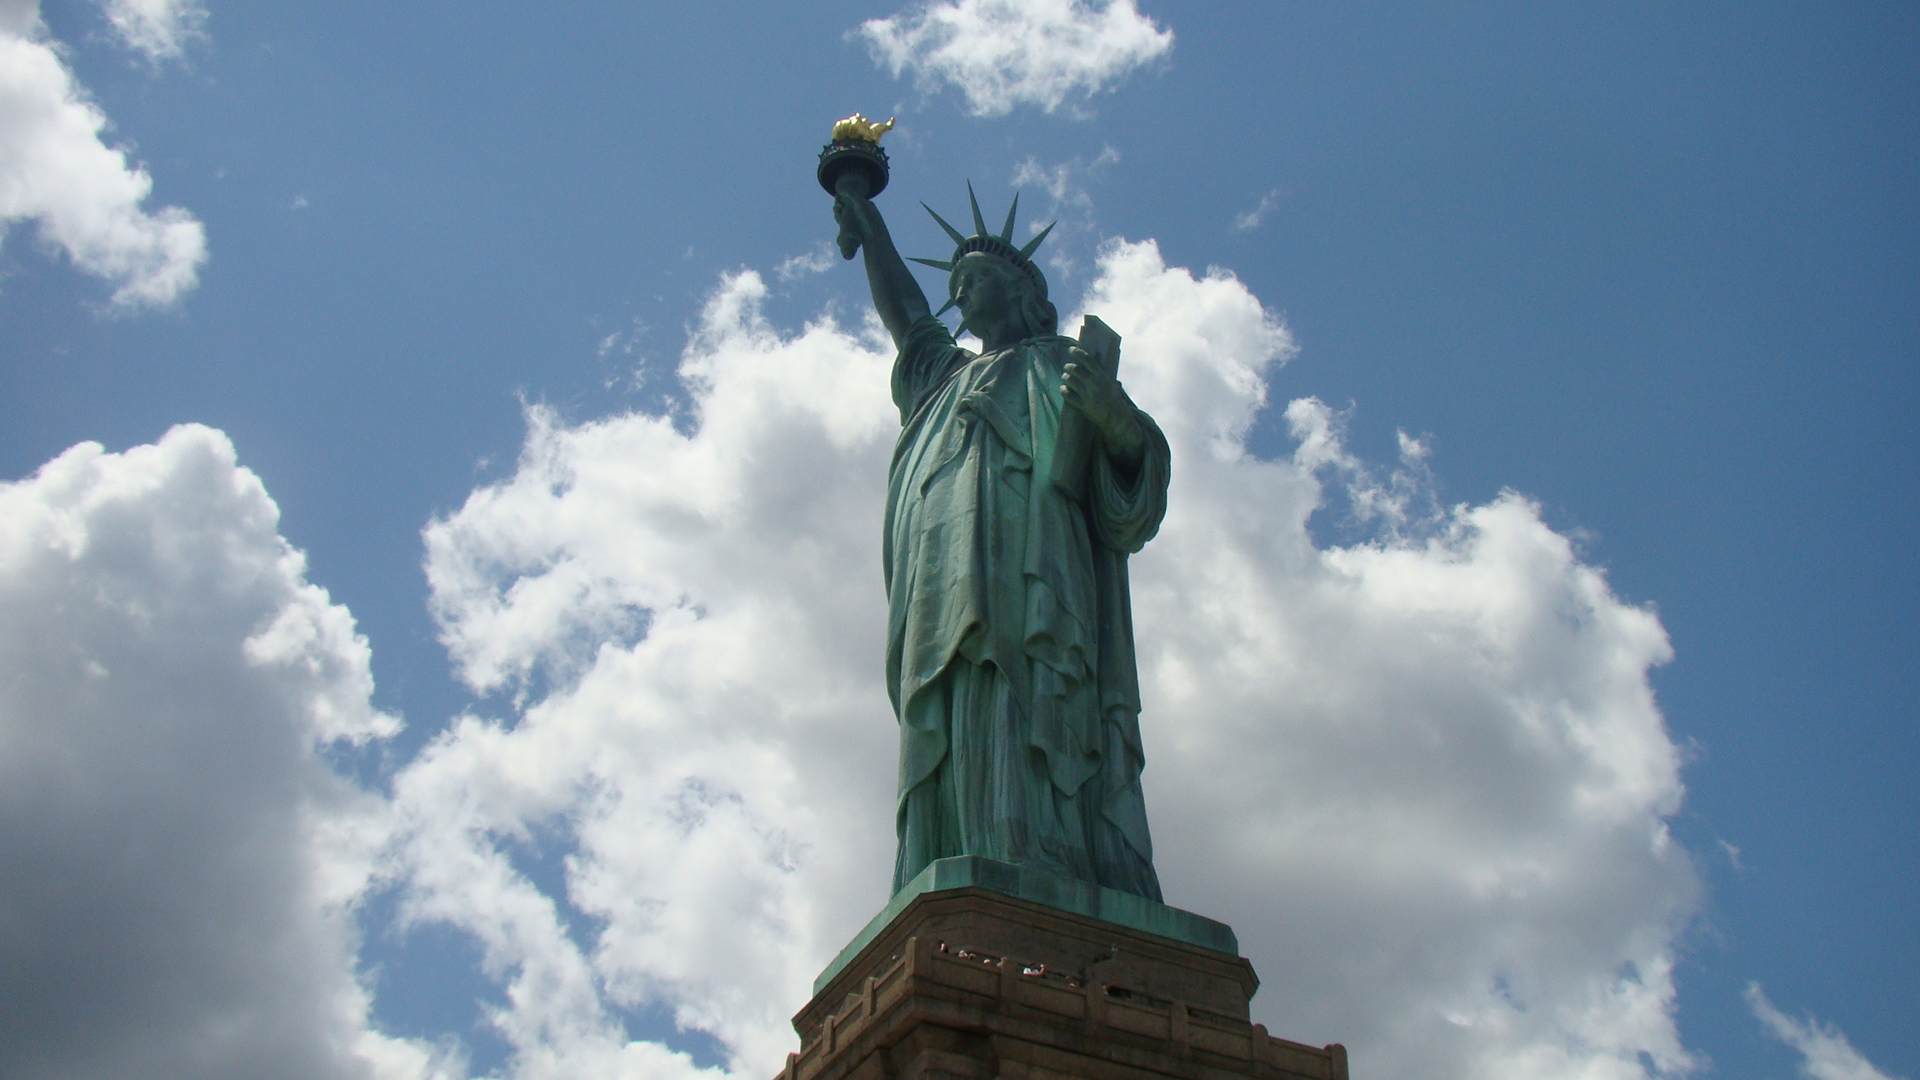 Sky Touching Statue Of Liberty Wallpaper   Travel HD Wallpapers 1920x1080